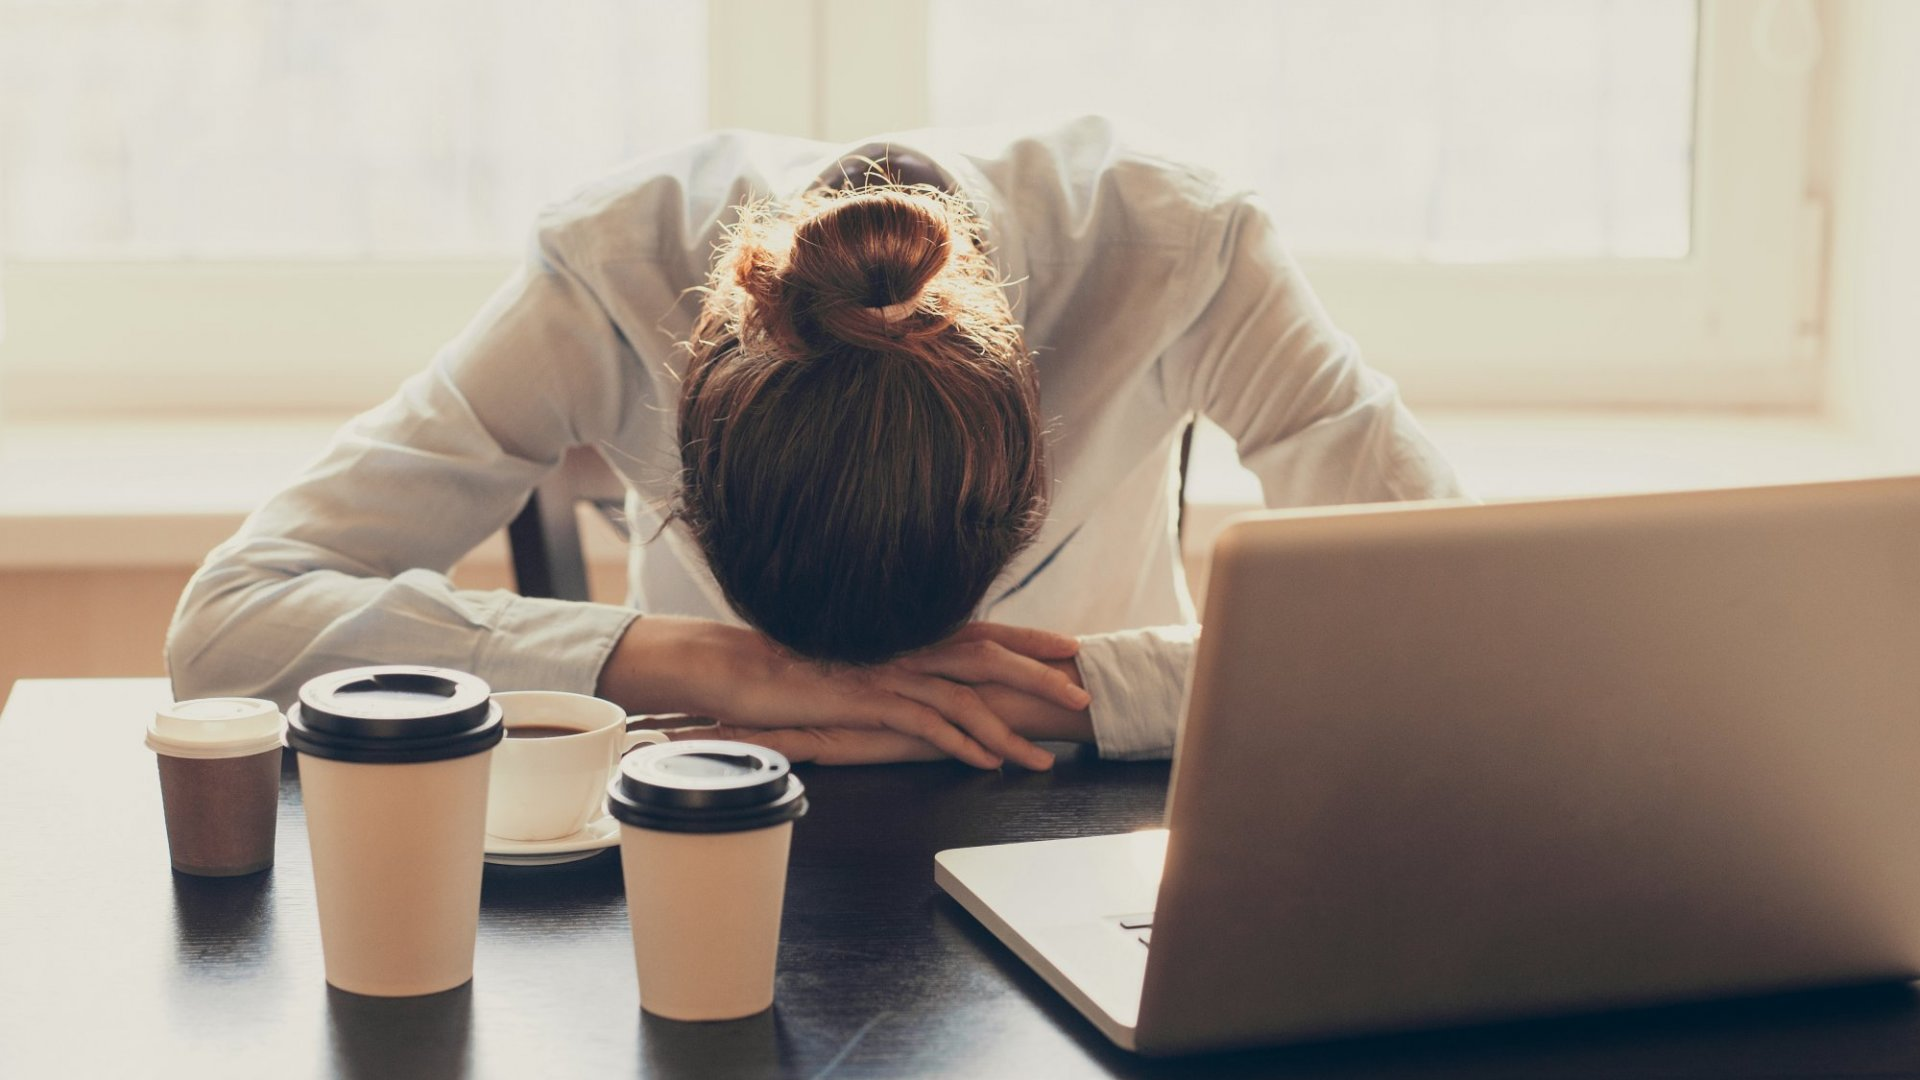 6 Tips for Avoiding Burnout and Finding Balance